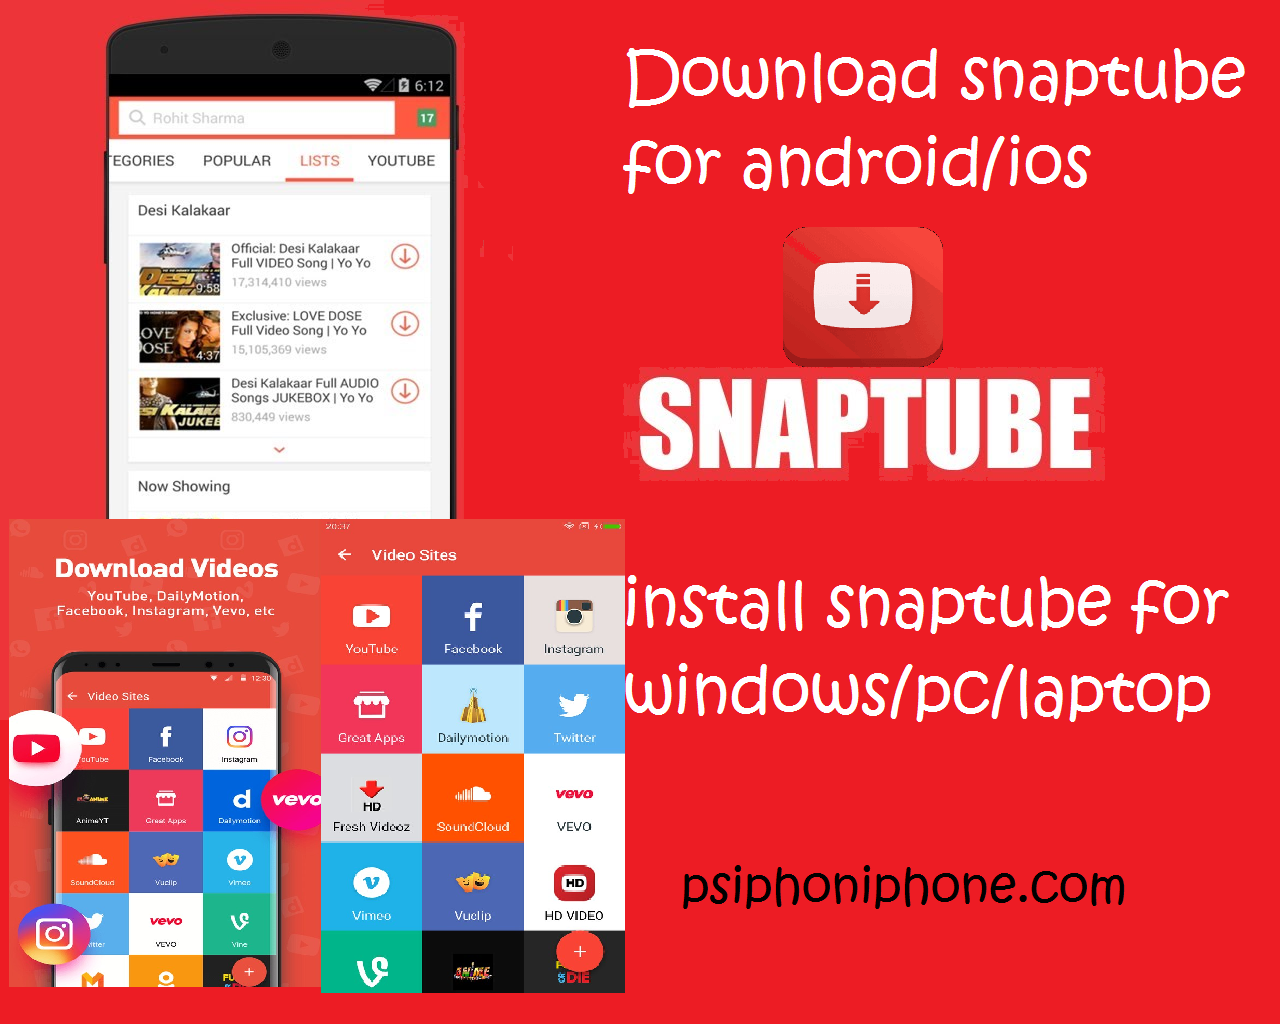 snaptube download for android/ios to install snaptube